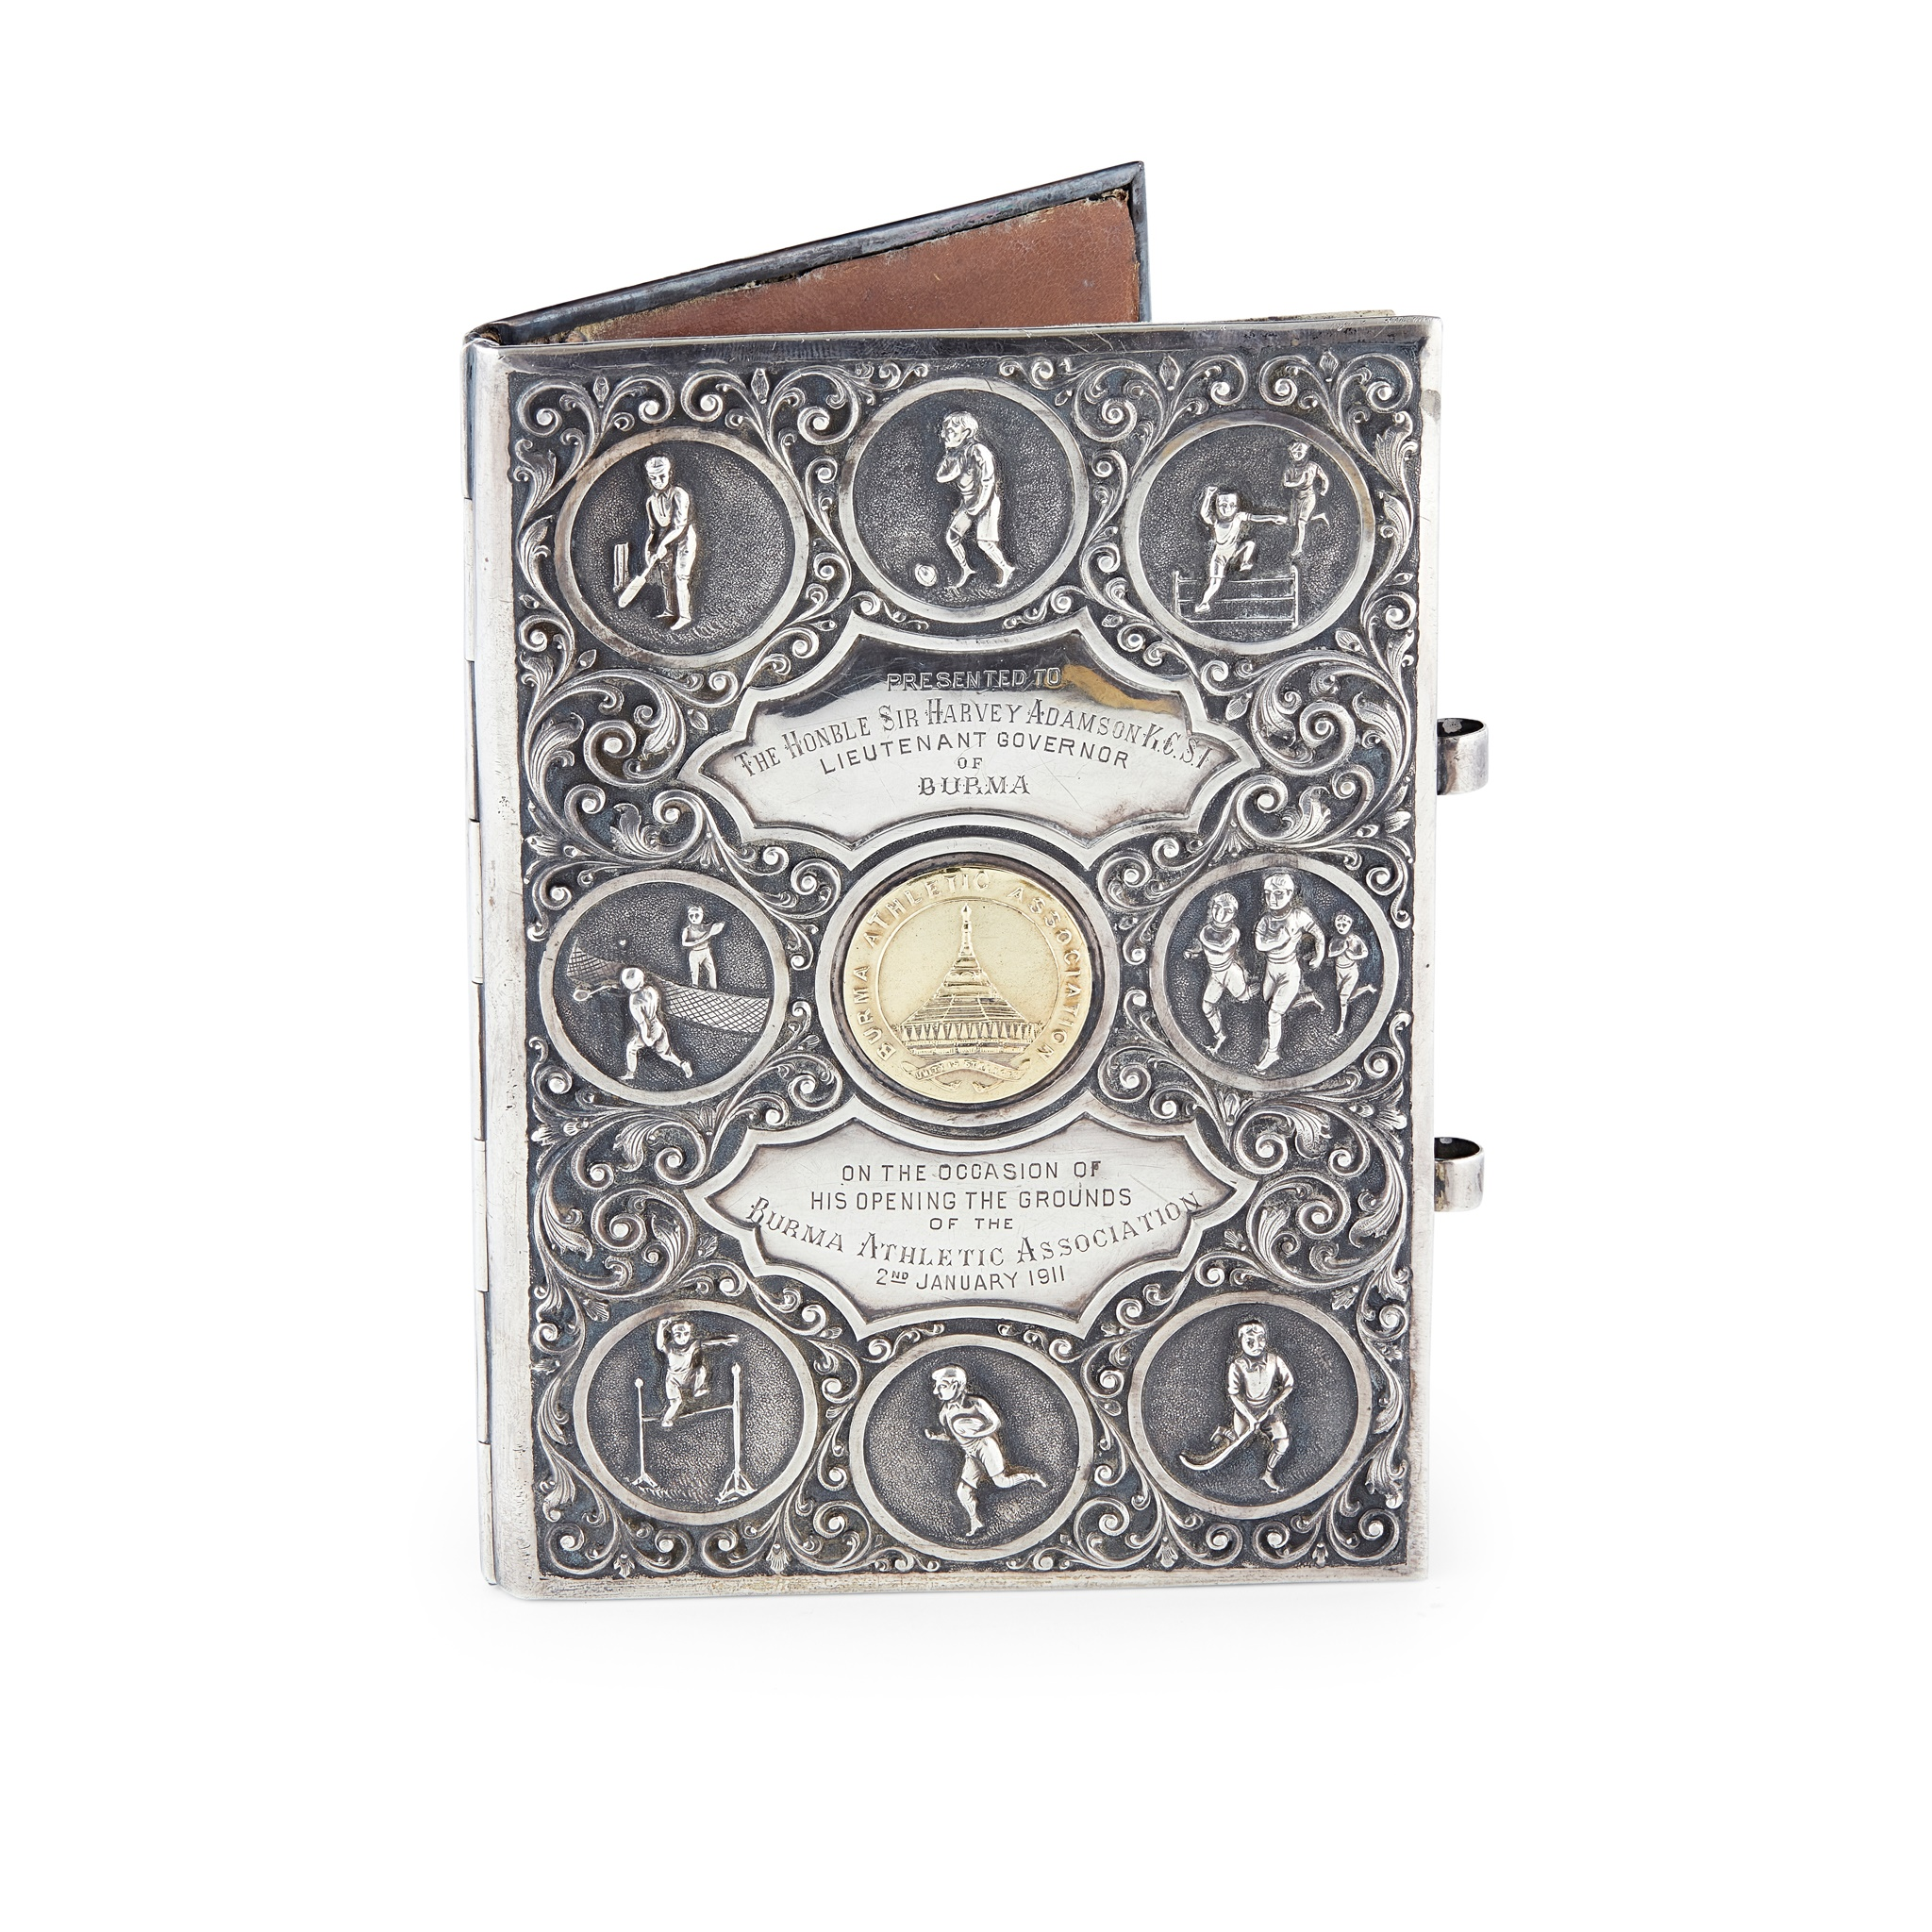 BURMESE SILVER AND SILVER GILT NOTEBOOK COVER, RELATING TO THE BURMA ATHLETIC ASSOCIATION DATED - Image 2 of 2